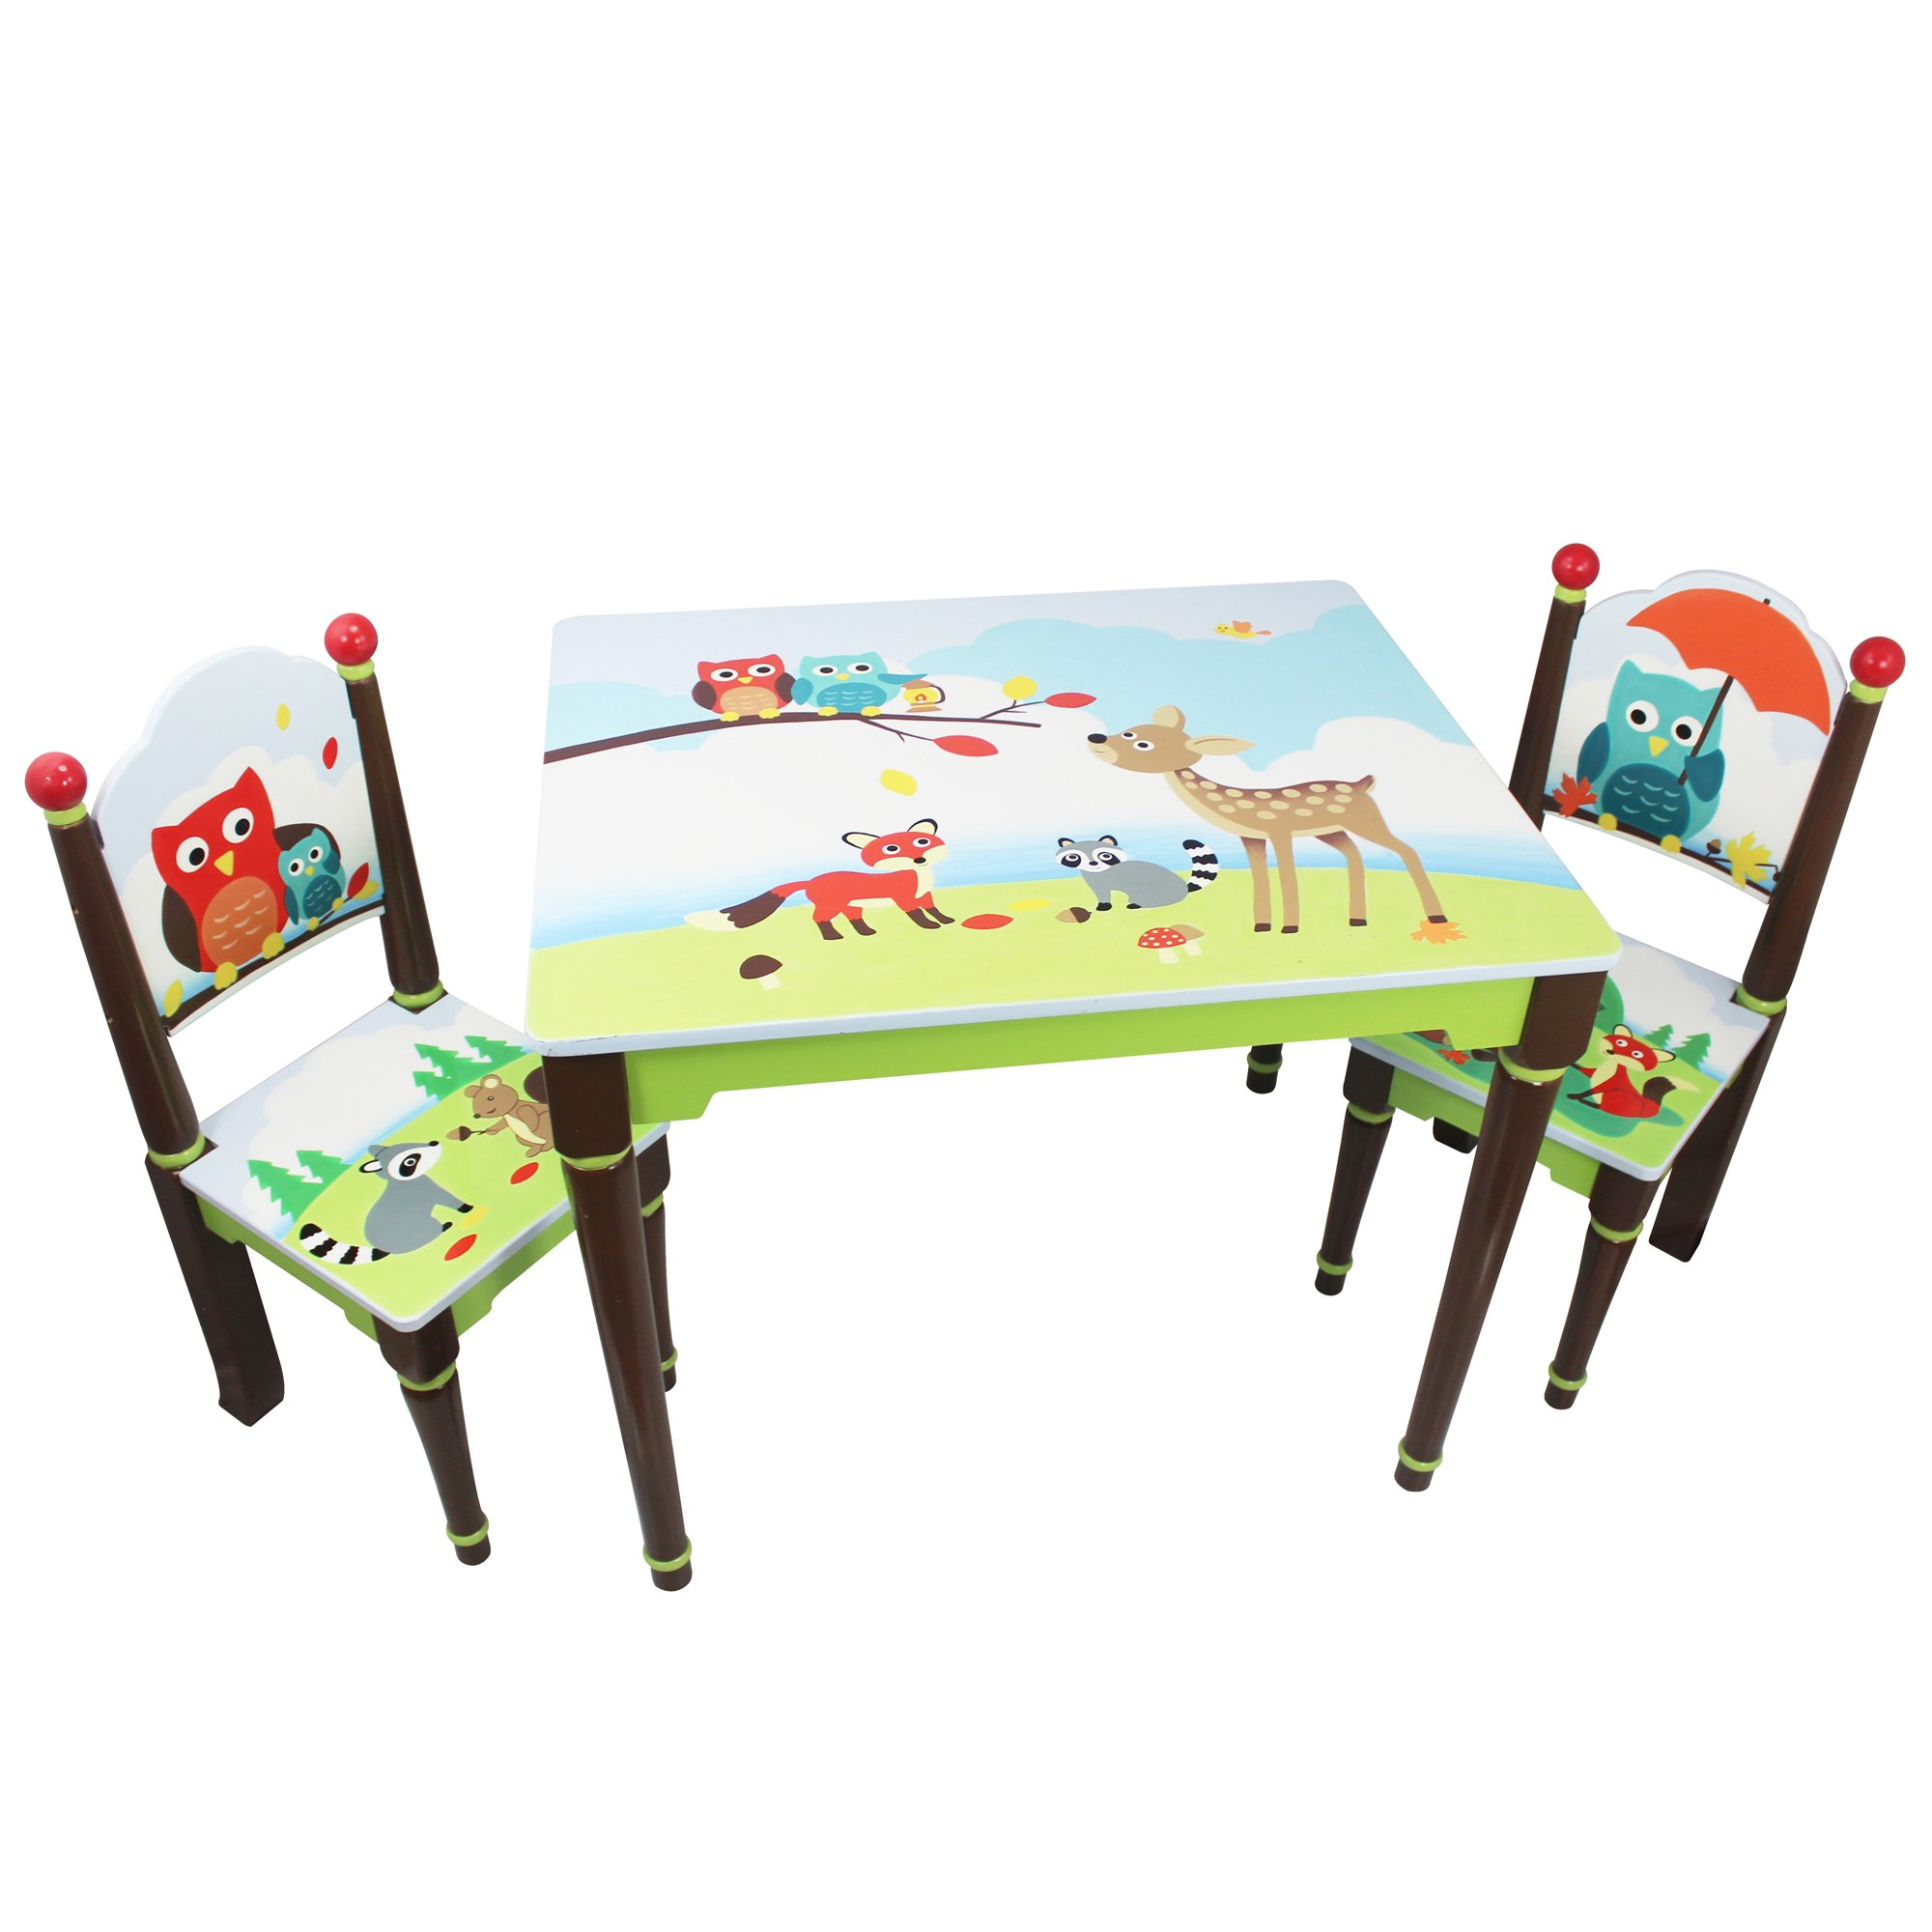 Fantasy Fields - Enchanted Woodland Thematic Hand Crafted Kids Wooden Table and 2 Chairs Set |Imagination Inspiring Hand Crafted & Hand Painted Details | Non-Toxic, Lead Free Water-based Paint